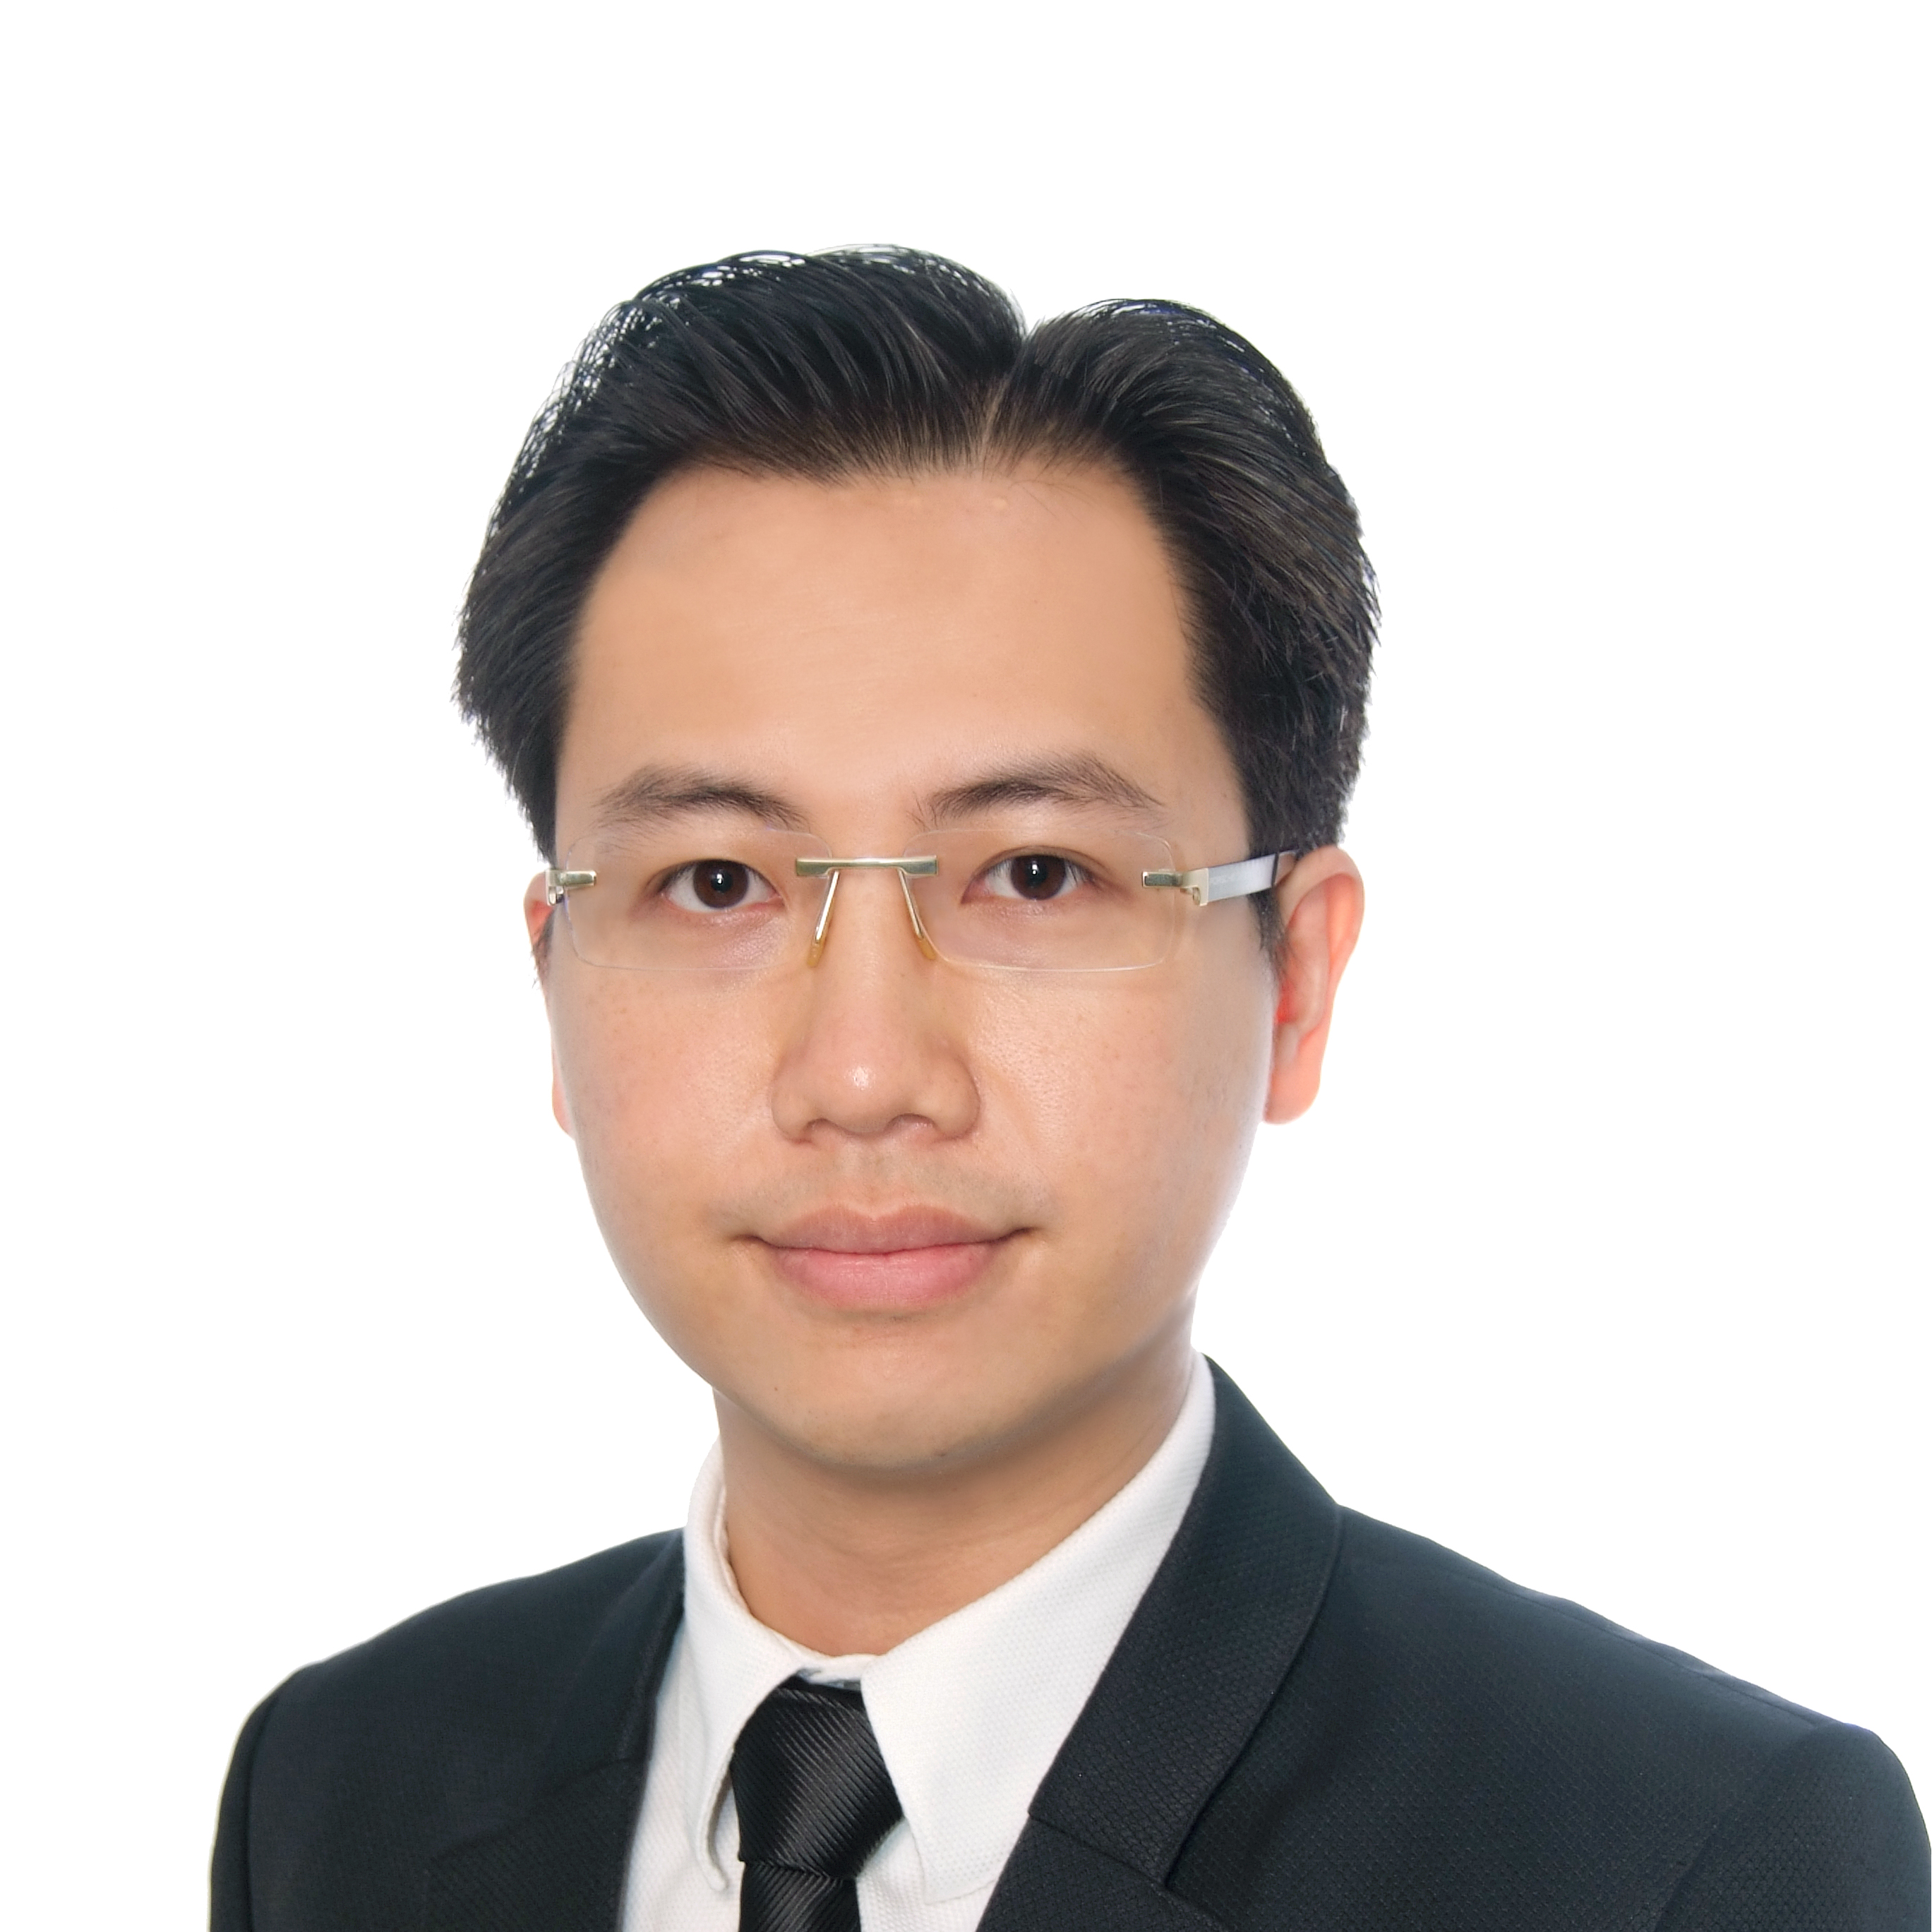 Justin Tay, Regional Director & General Manager (Asia) at Times Higher Education